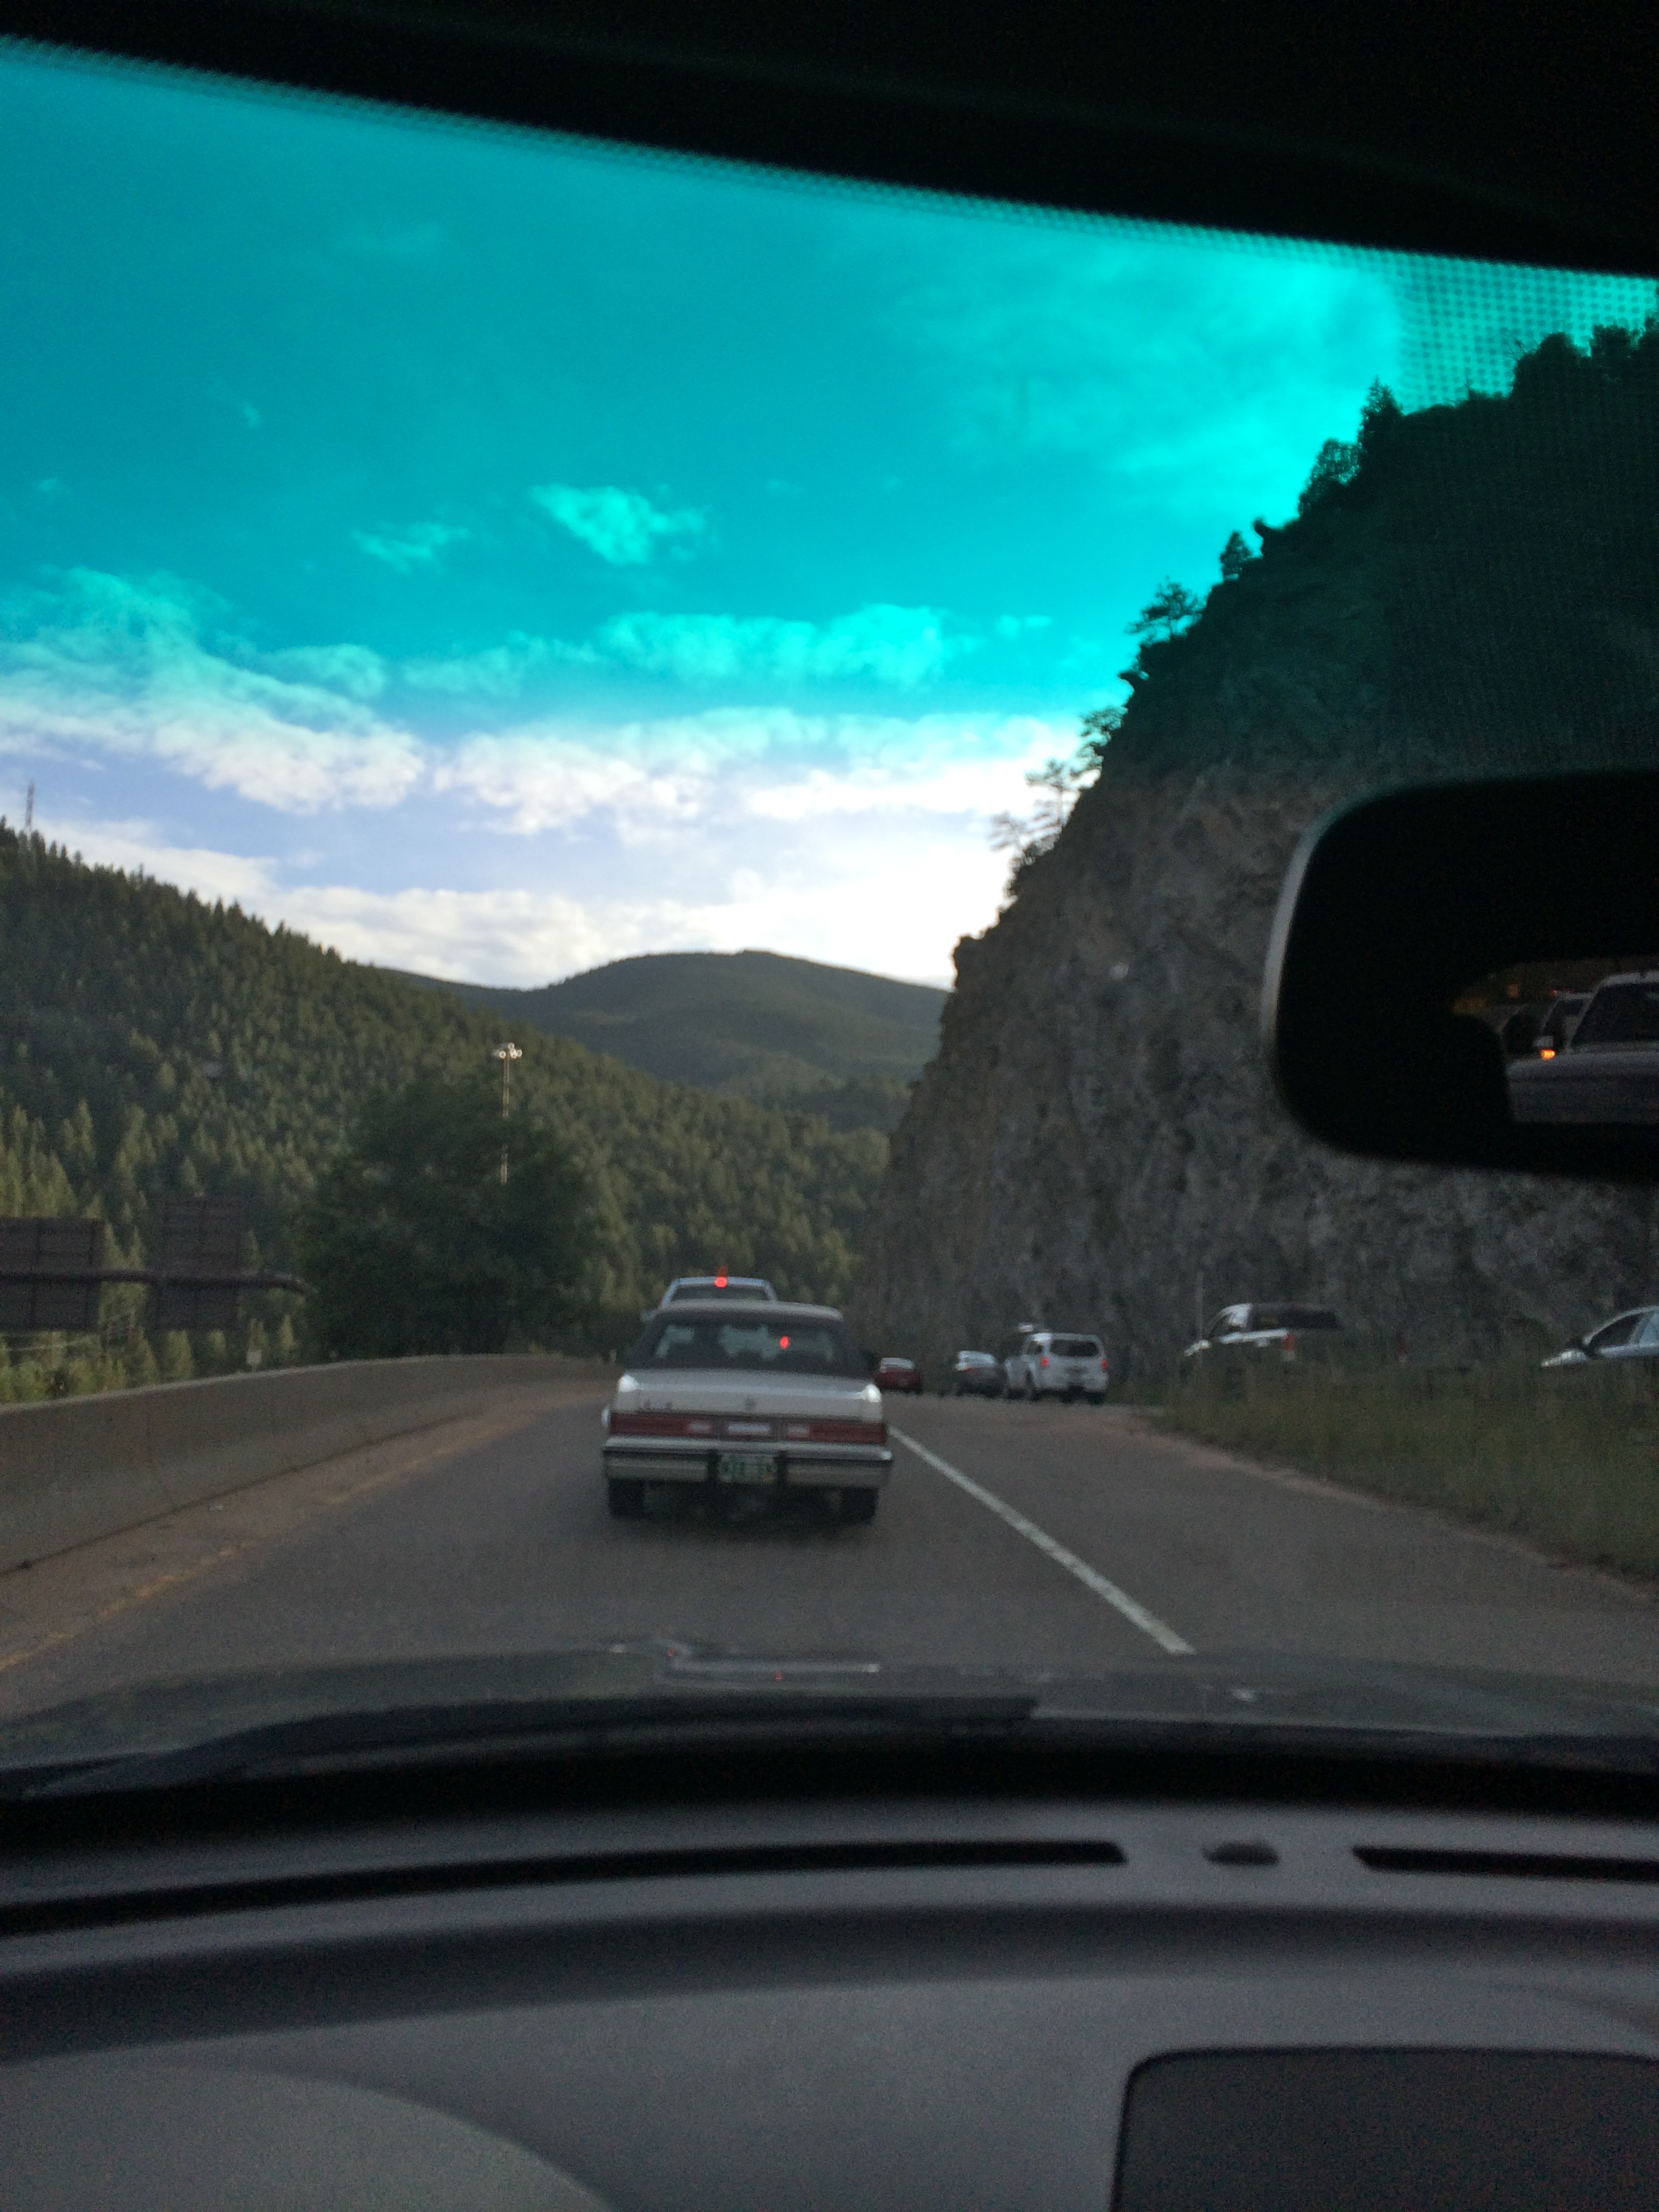 View of mountains through car windsheild